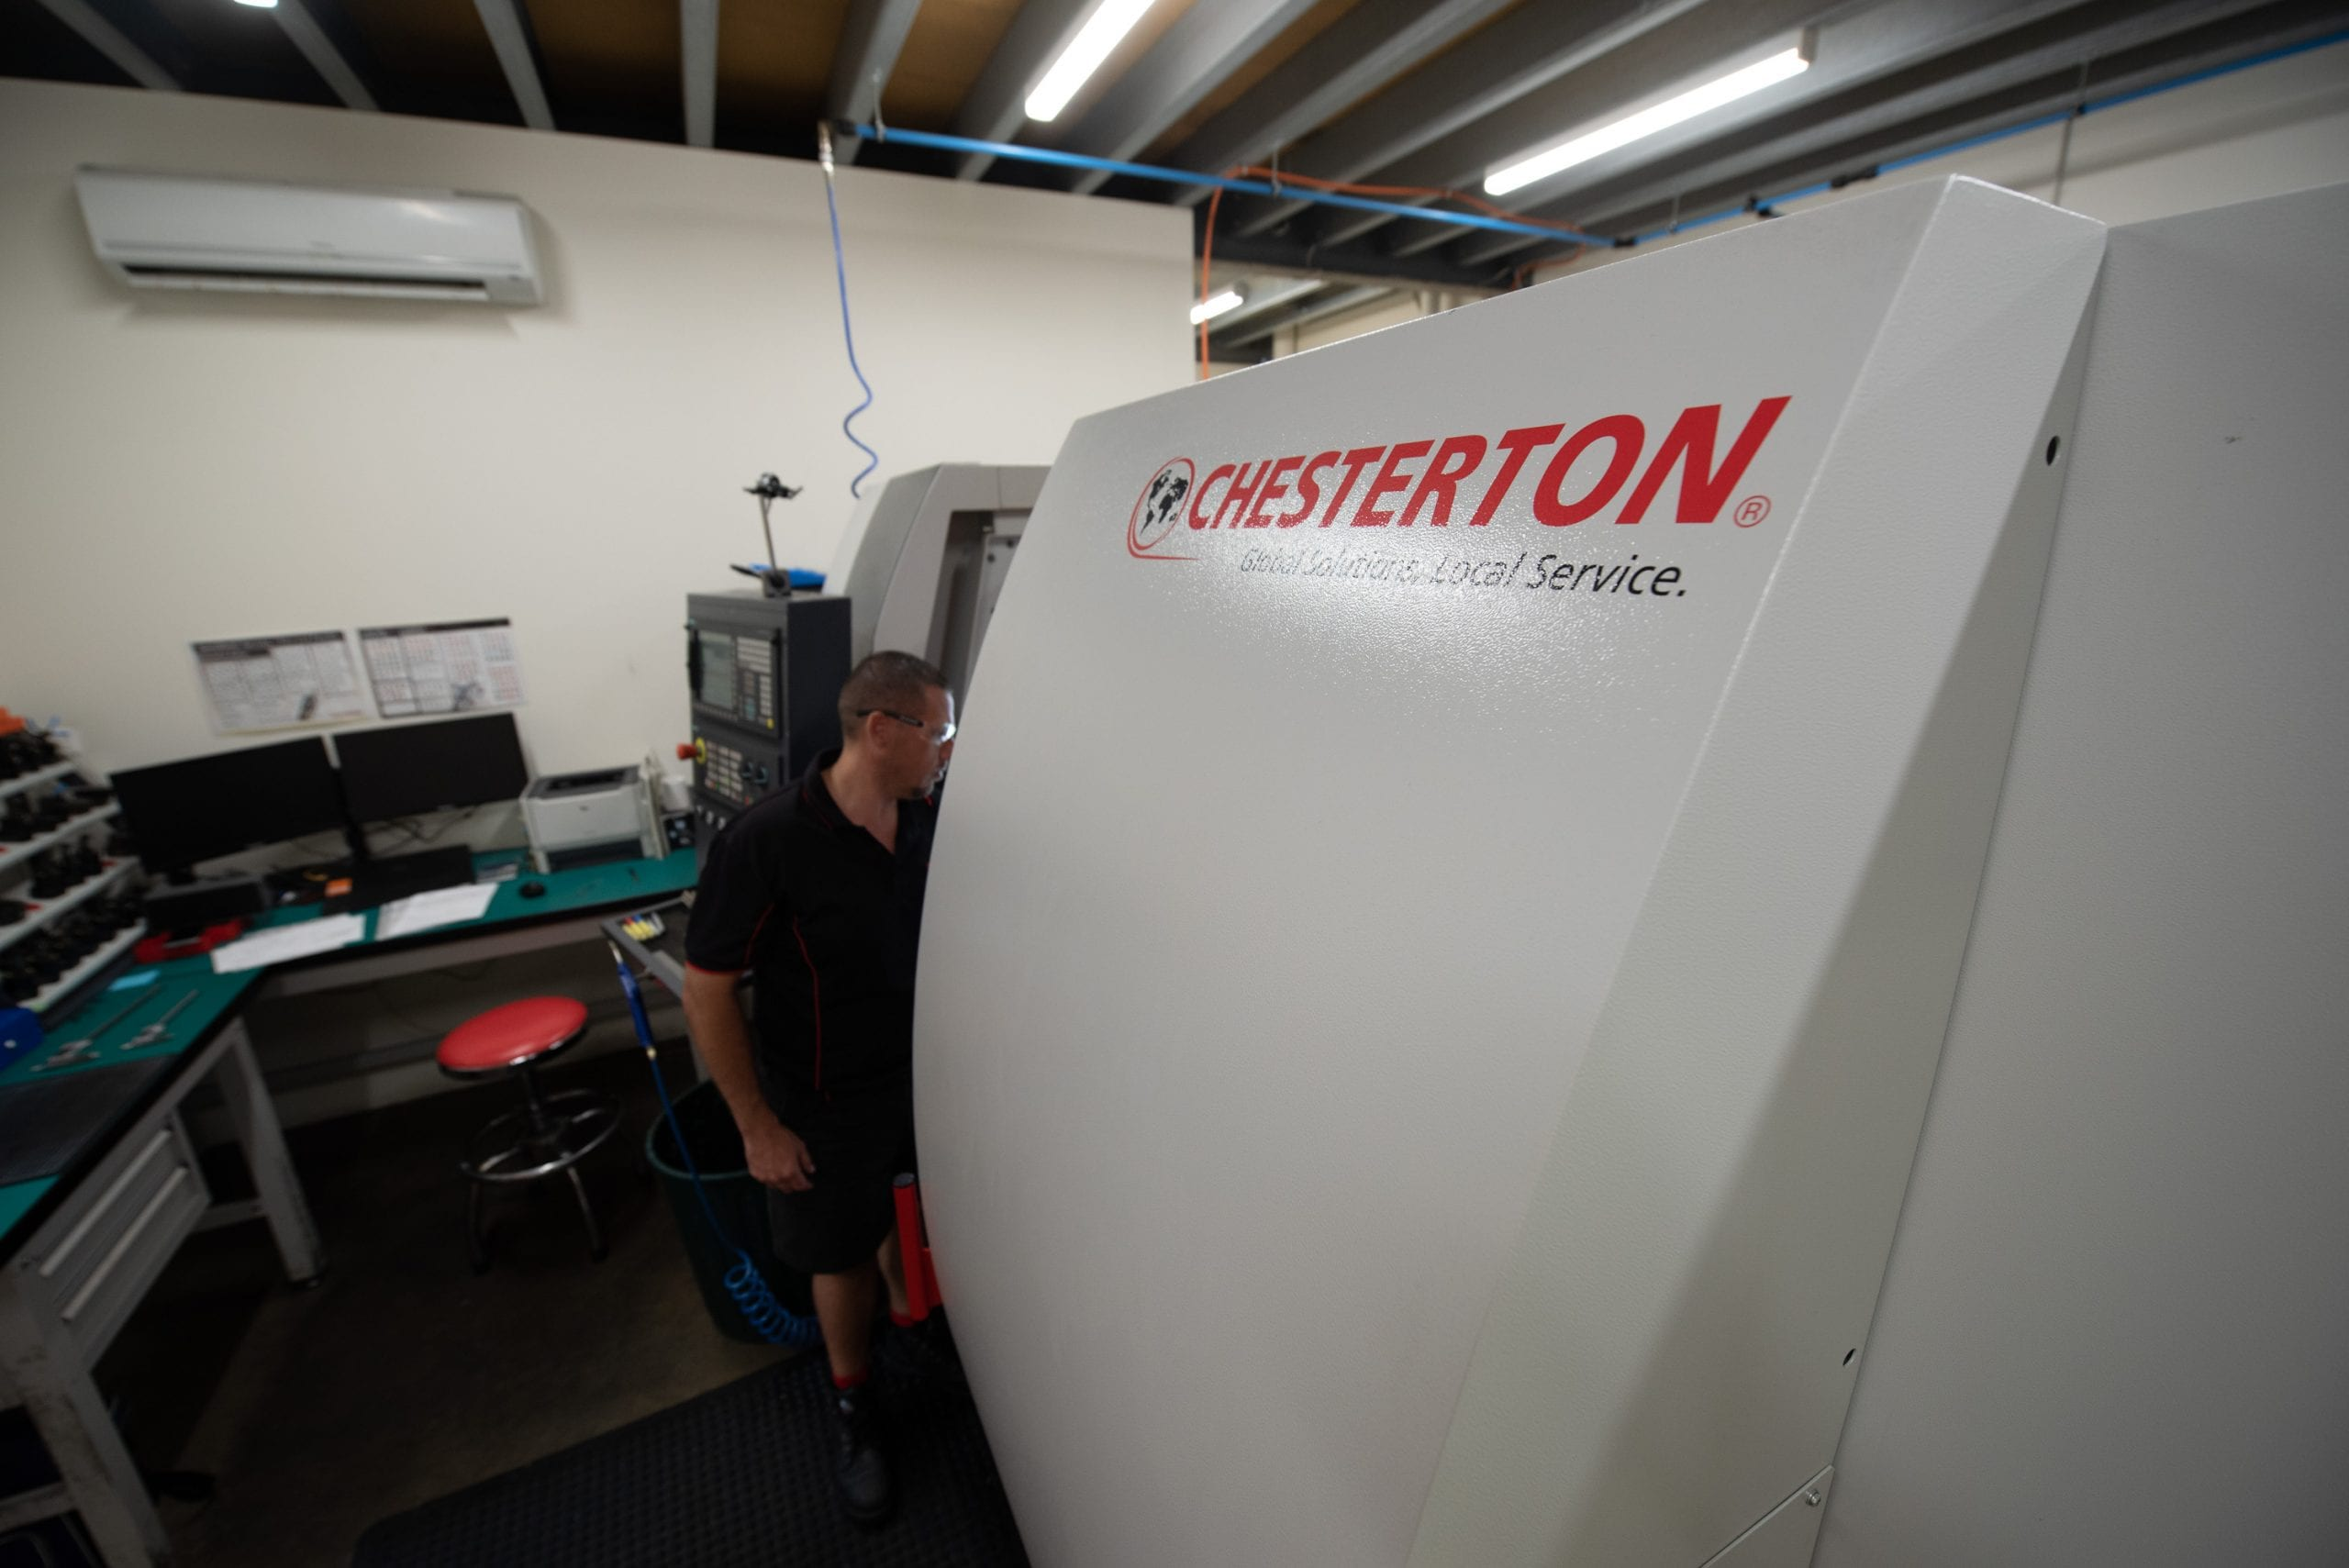 Male staff with machinery with Chesterton logo